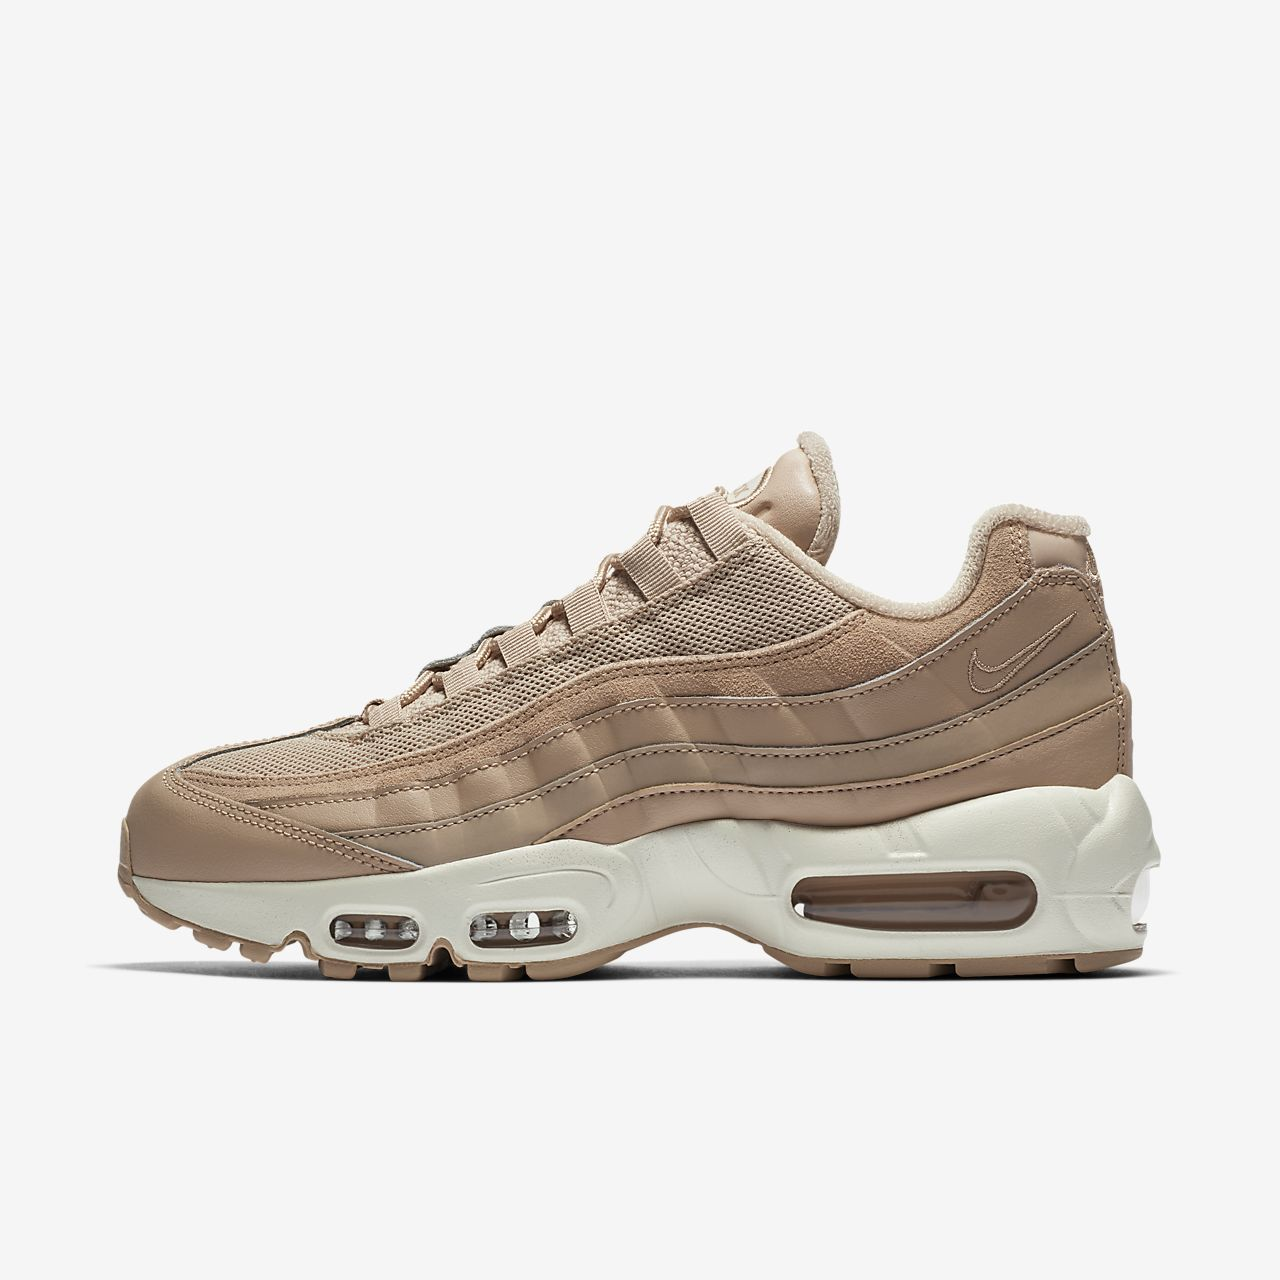 b0c8df1a8cb Nike Air Max 95 Winterized Women s Shoe. Nike.com GB